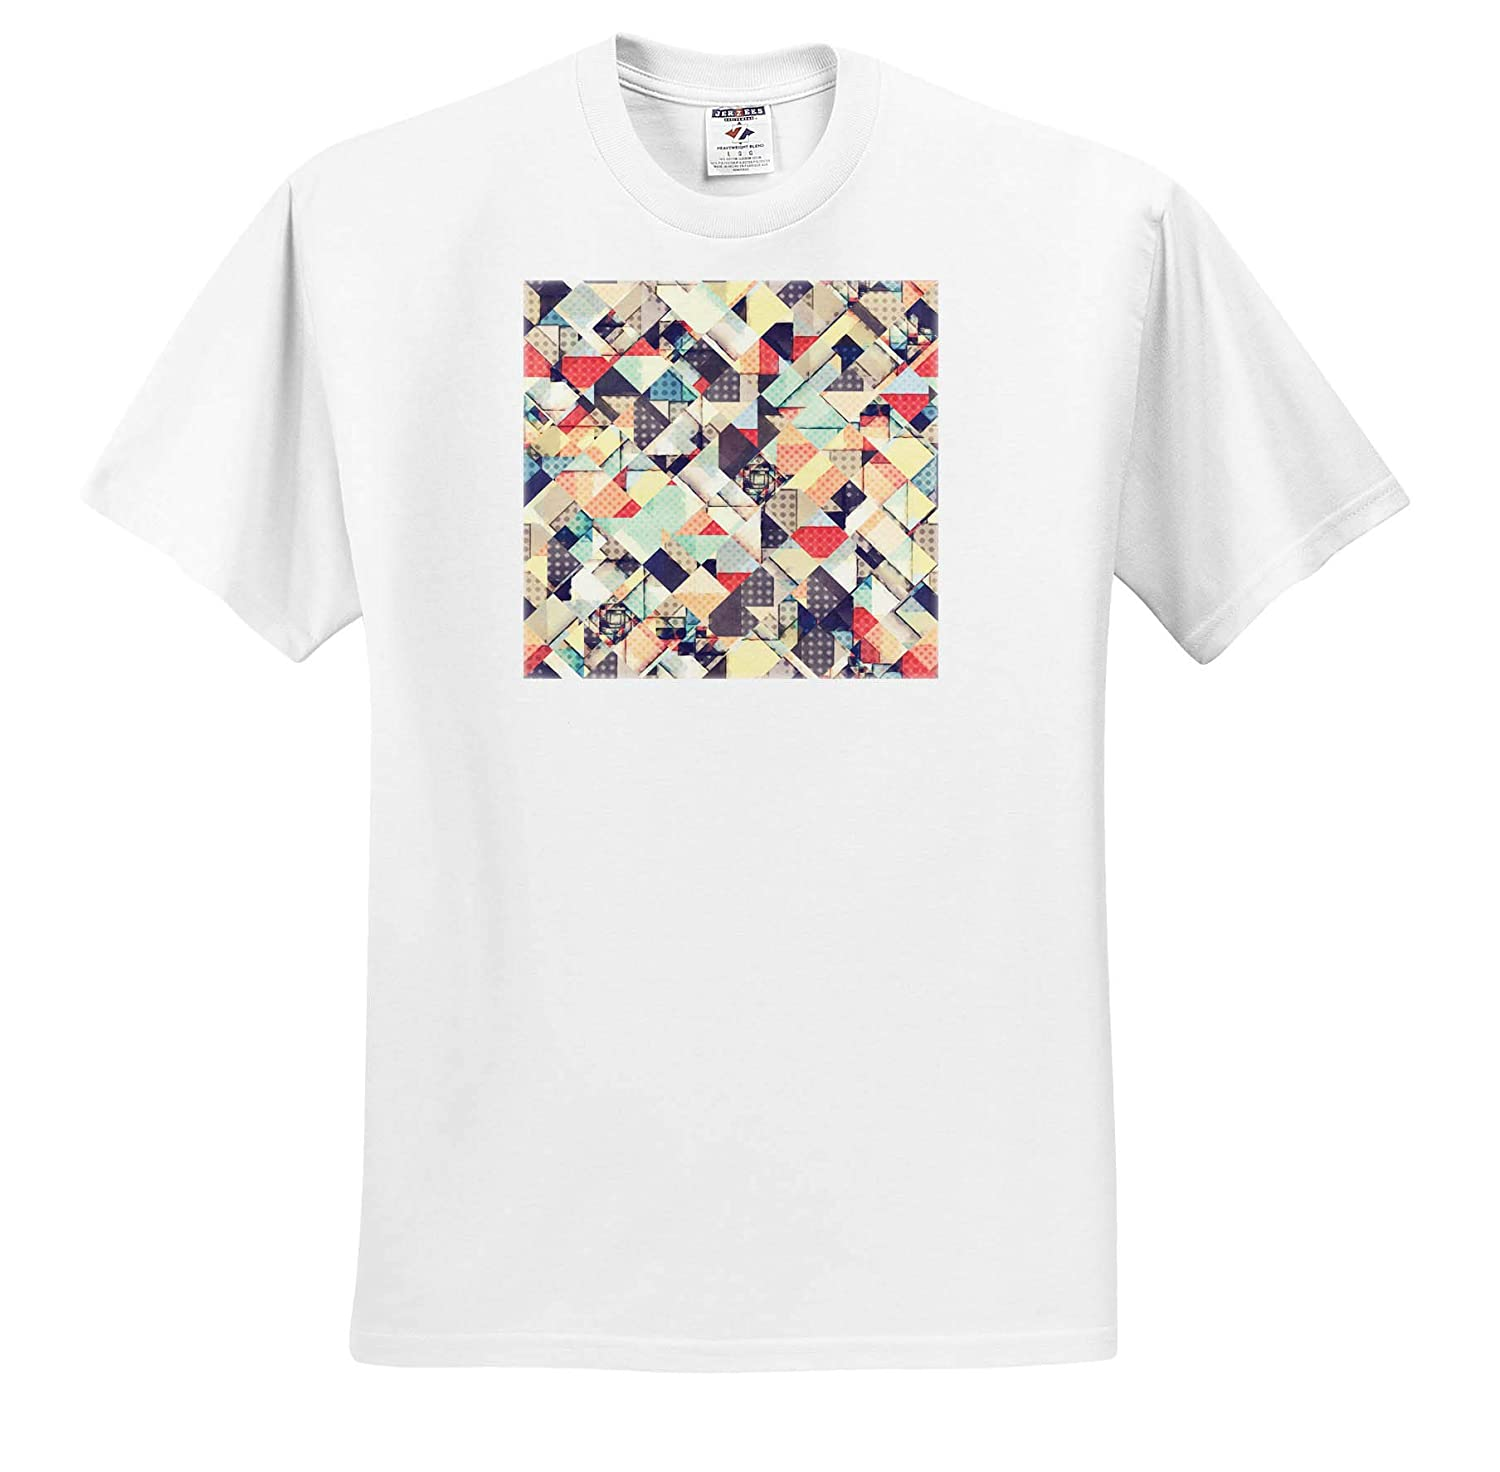 Colors and Geometry Abstract Quilted Style of Graphic Design with Texture T-Shirts Abstract 3dRose Perkins Designs